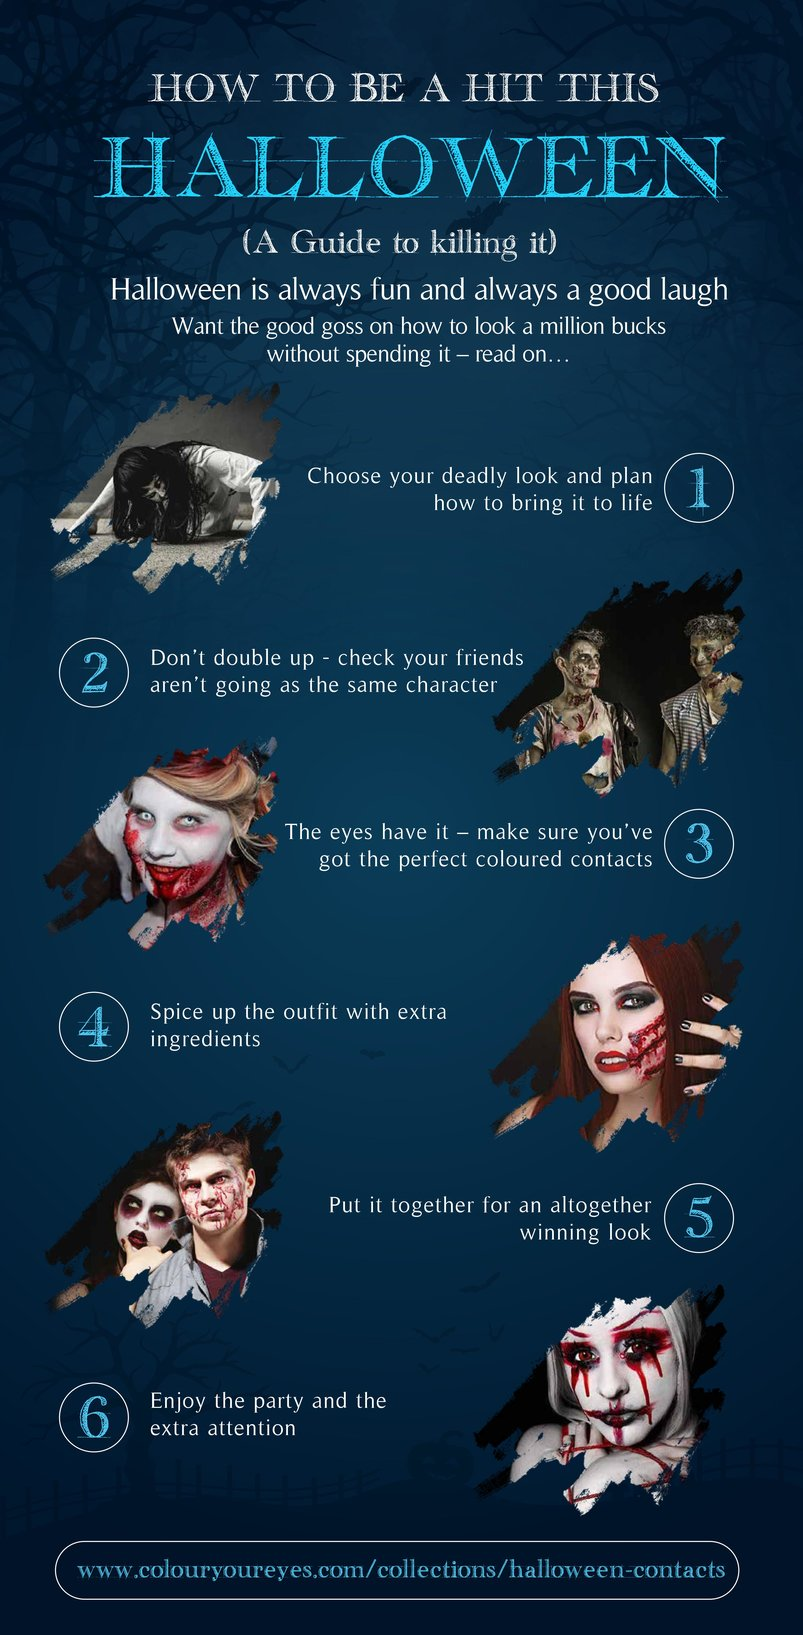 How to be a hit this halloween